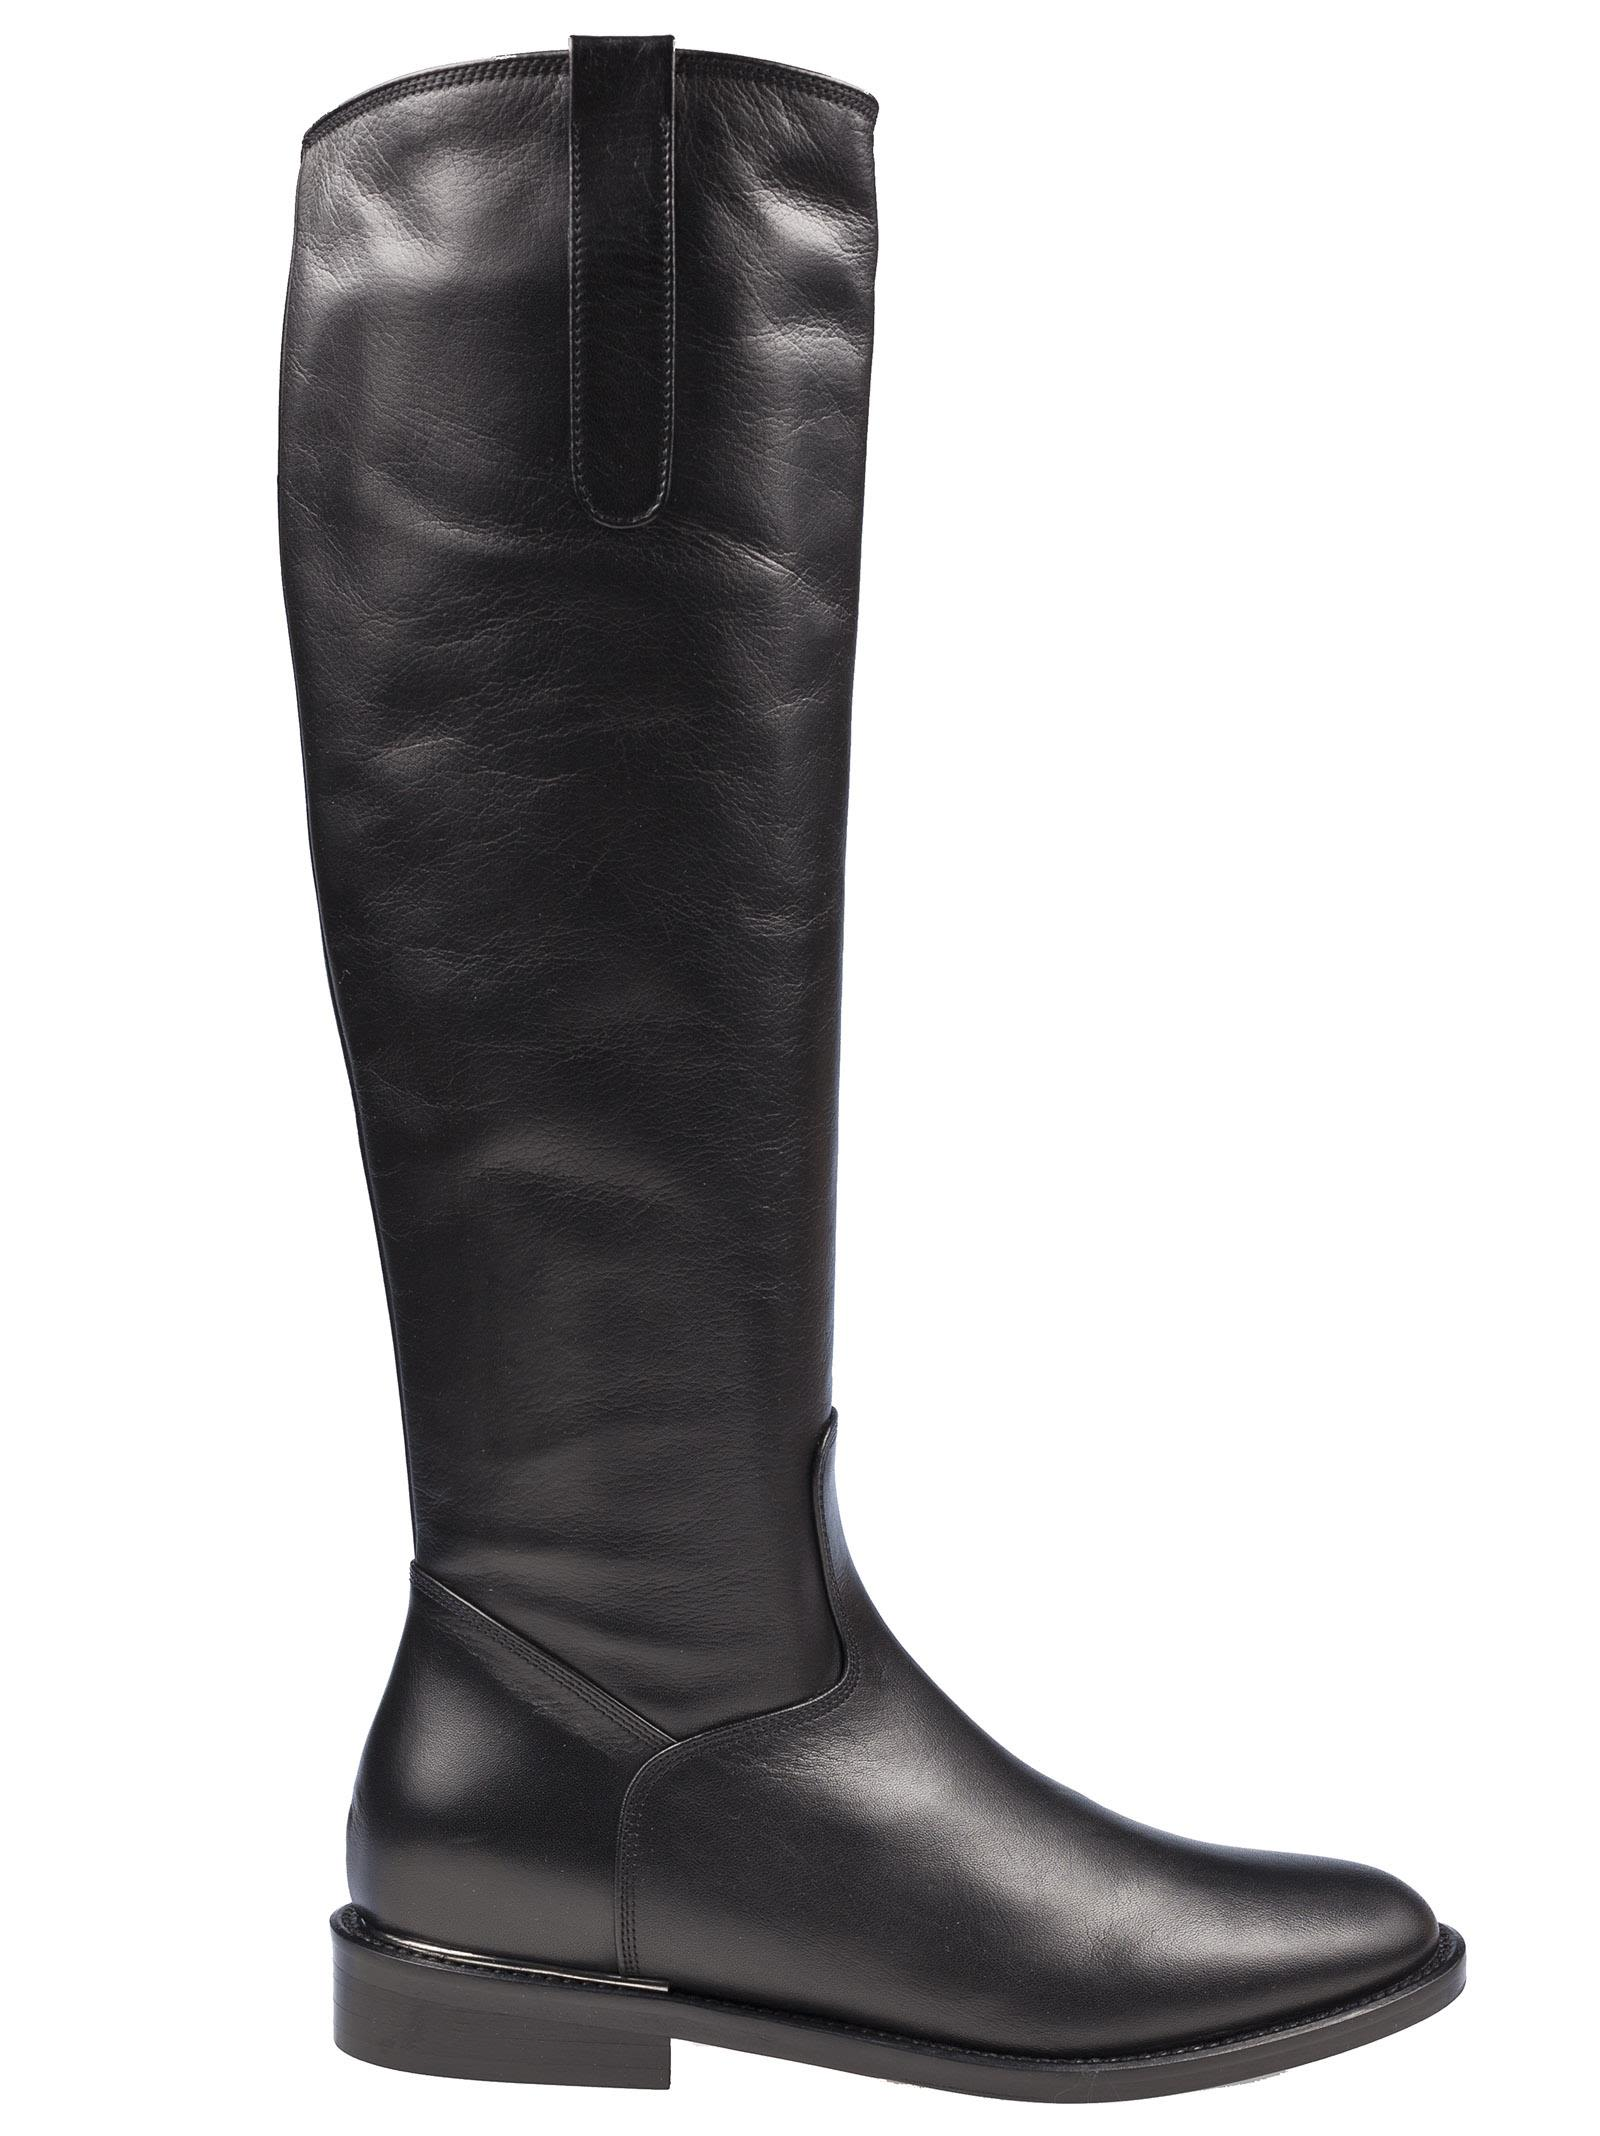 PETER FLOWERS Round Toe Boots